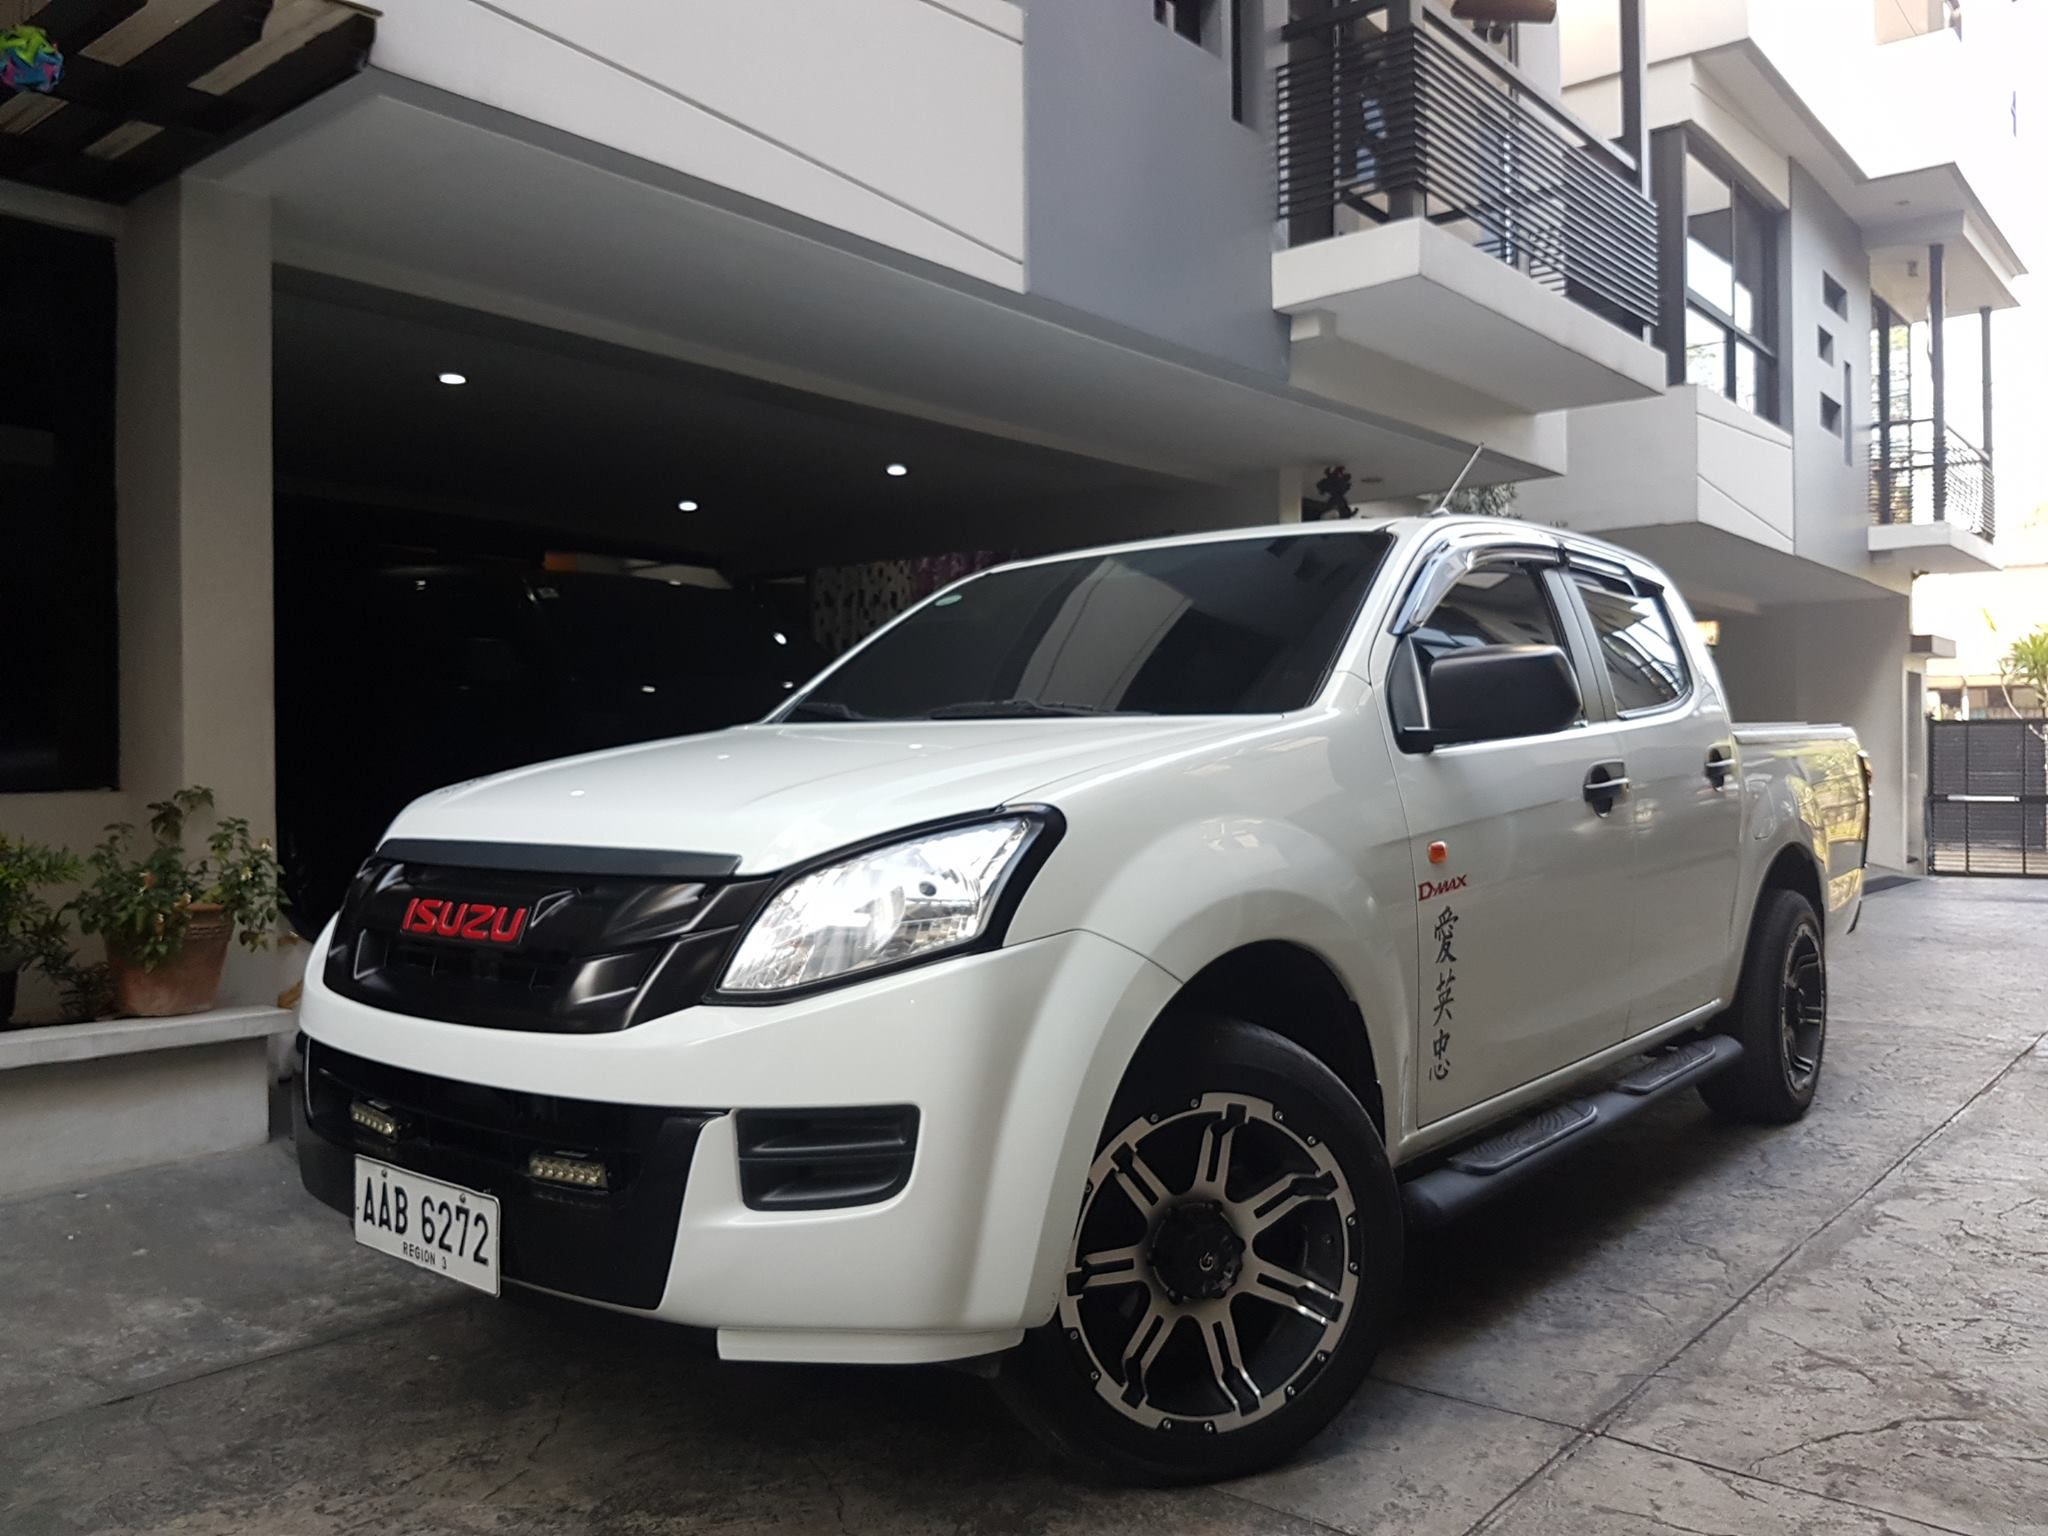 Rushsale Used 2014 Isuzu D Max Lt Must See Carsforsale At Auto Trade Philippines Call 09209066805 Or Click Photo For Isuzu D Max Cars Brand Cars For Sale